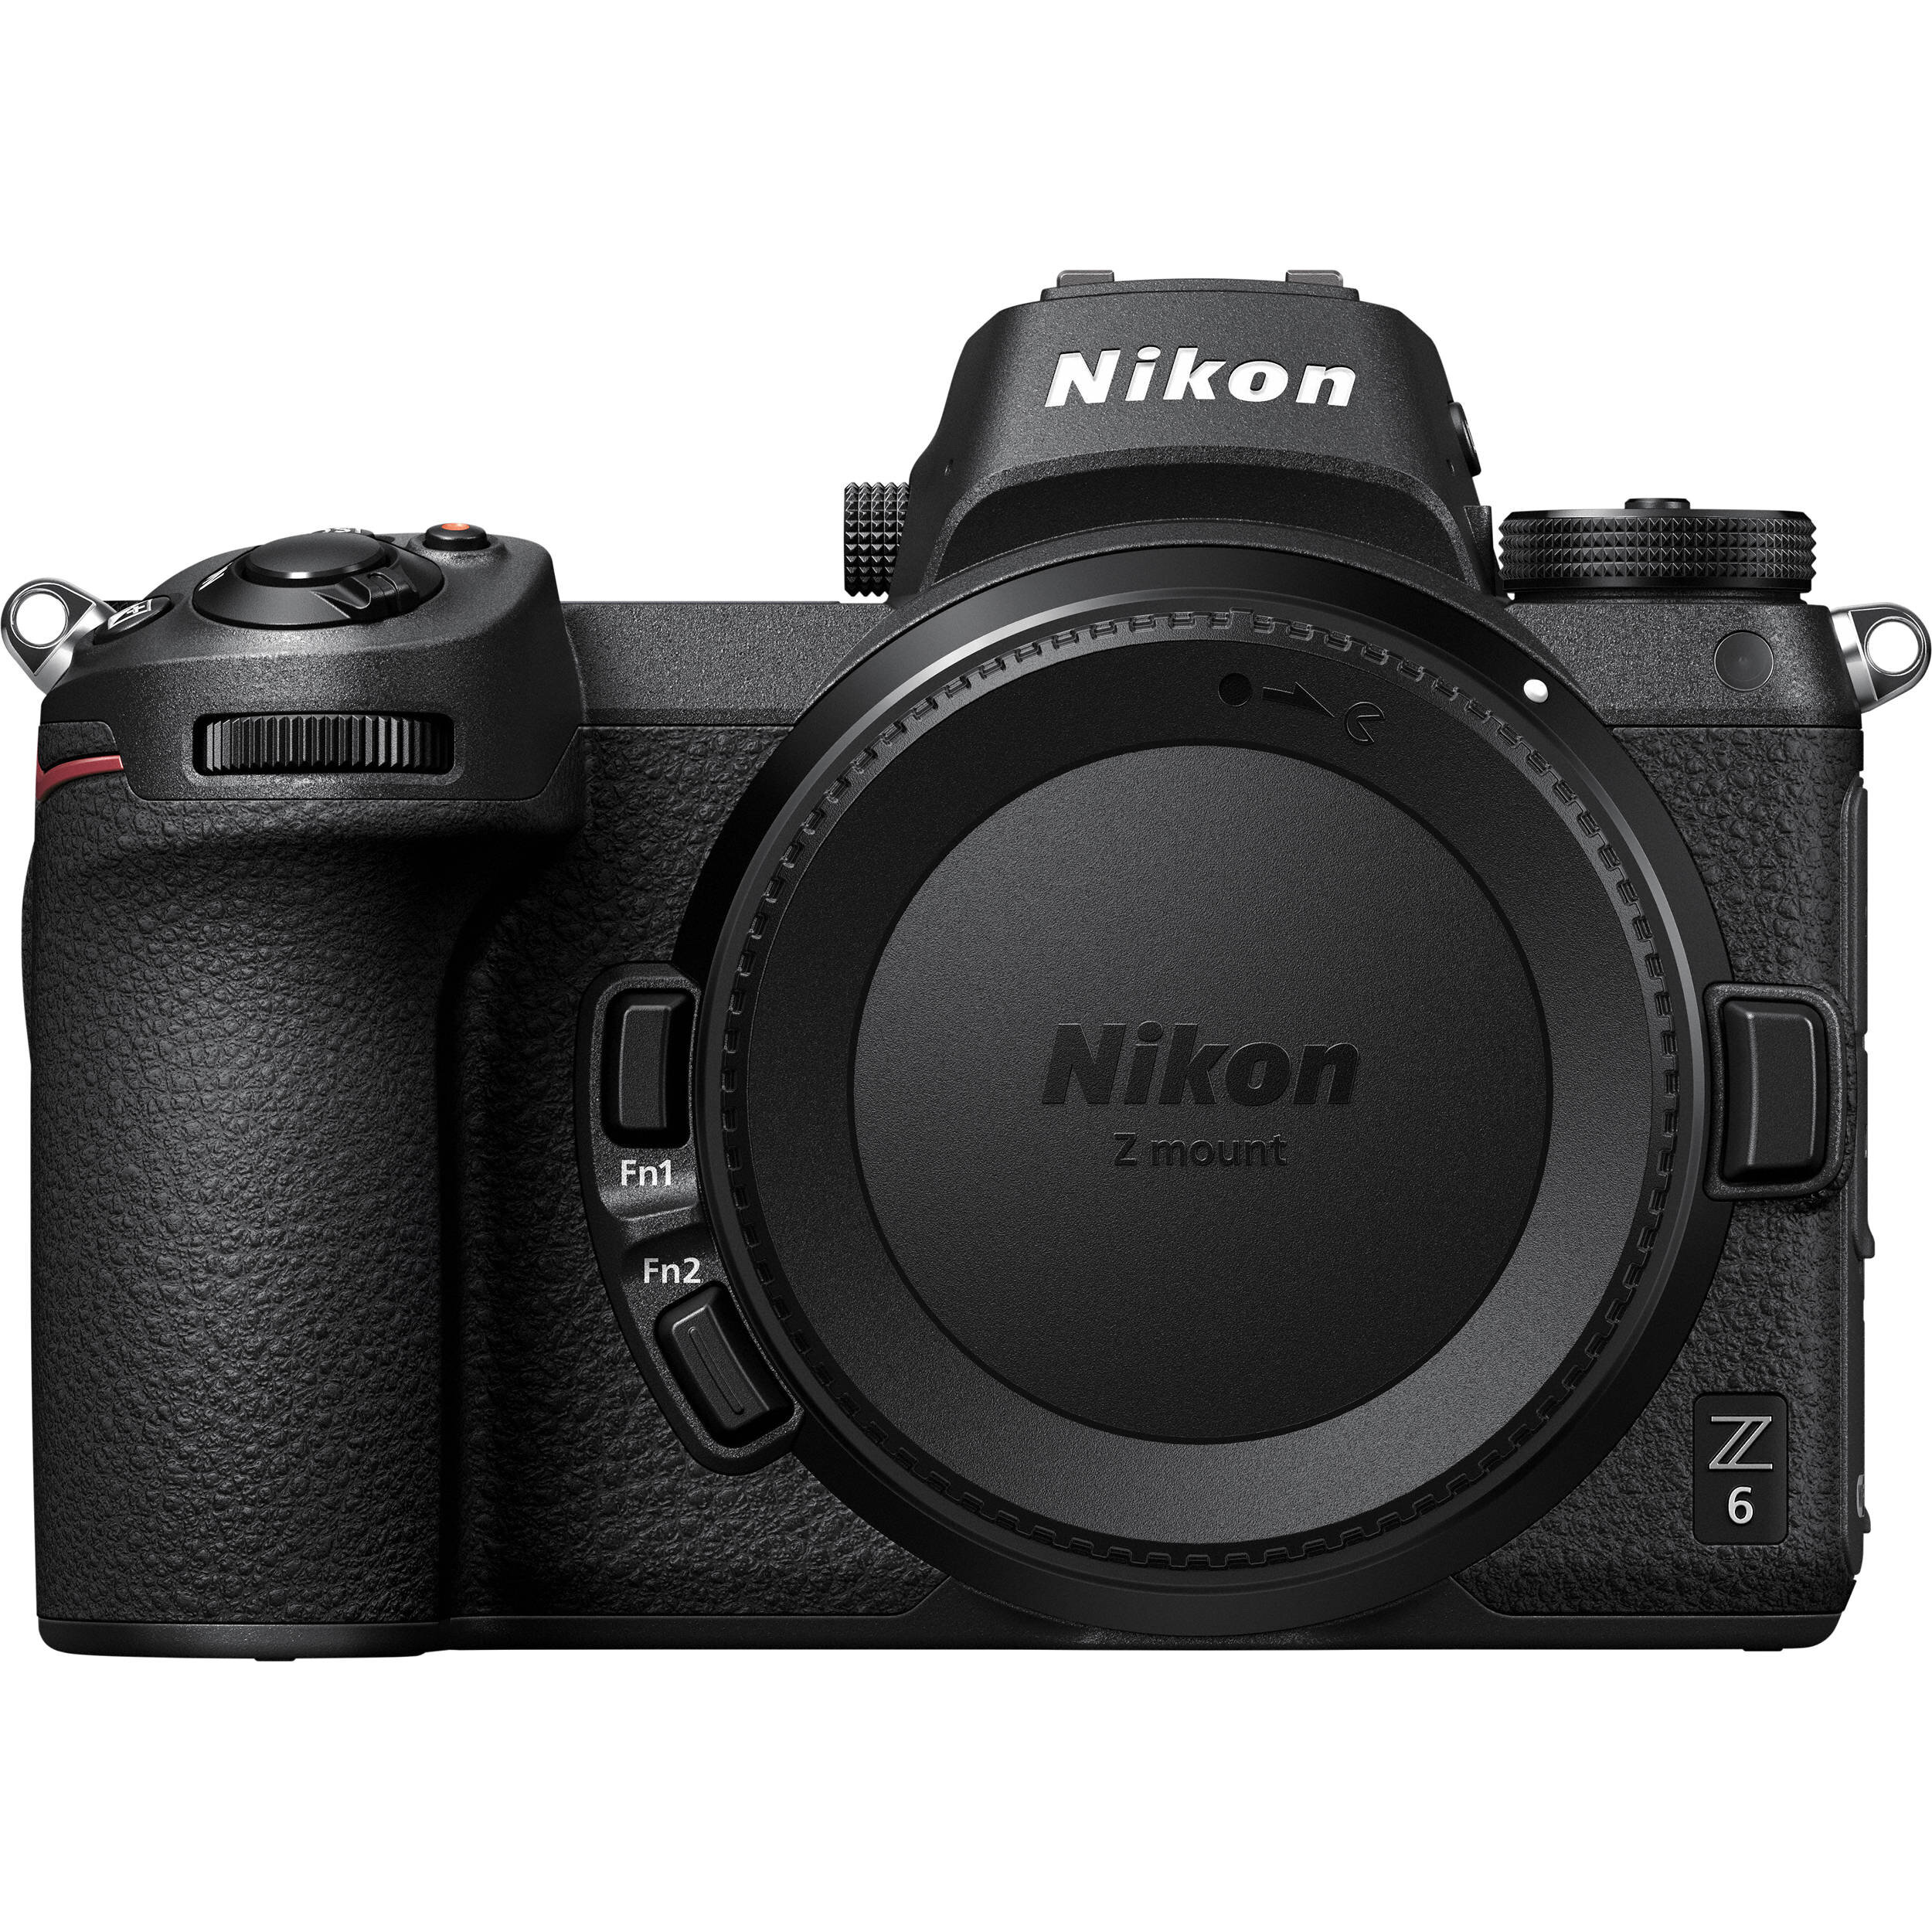 Nikon Z6 - Obvious choose for me. Something lightweight with great image quality.